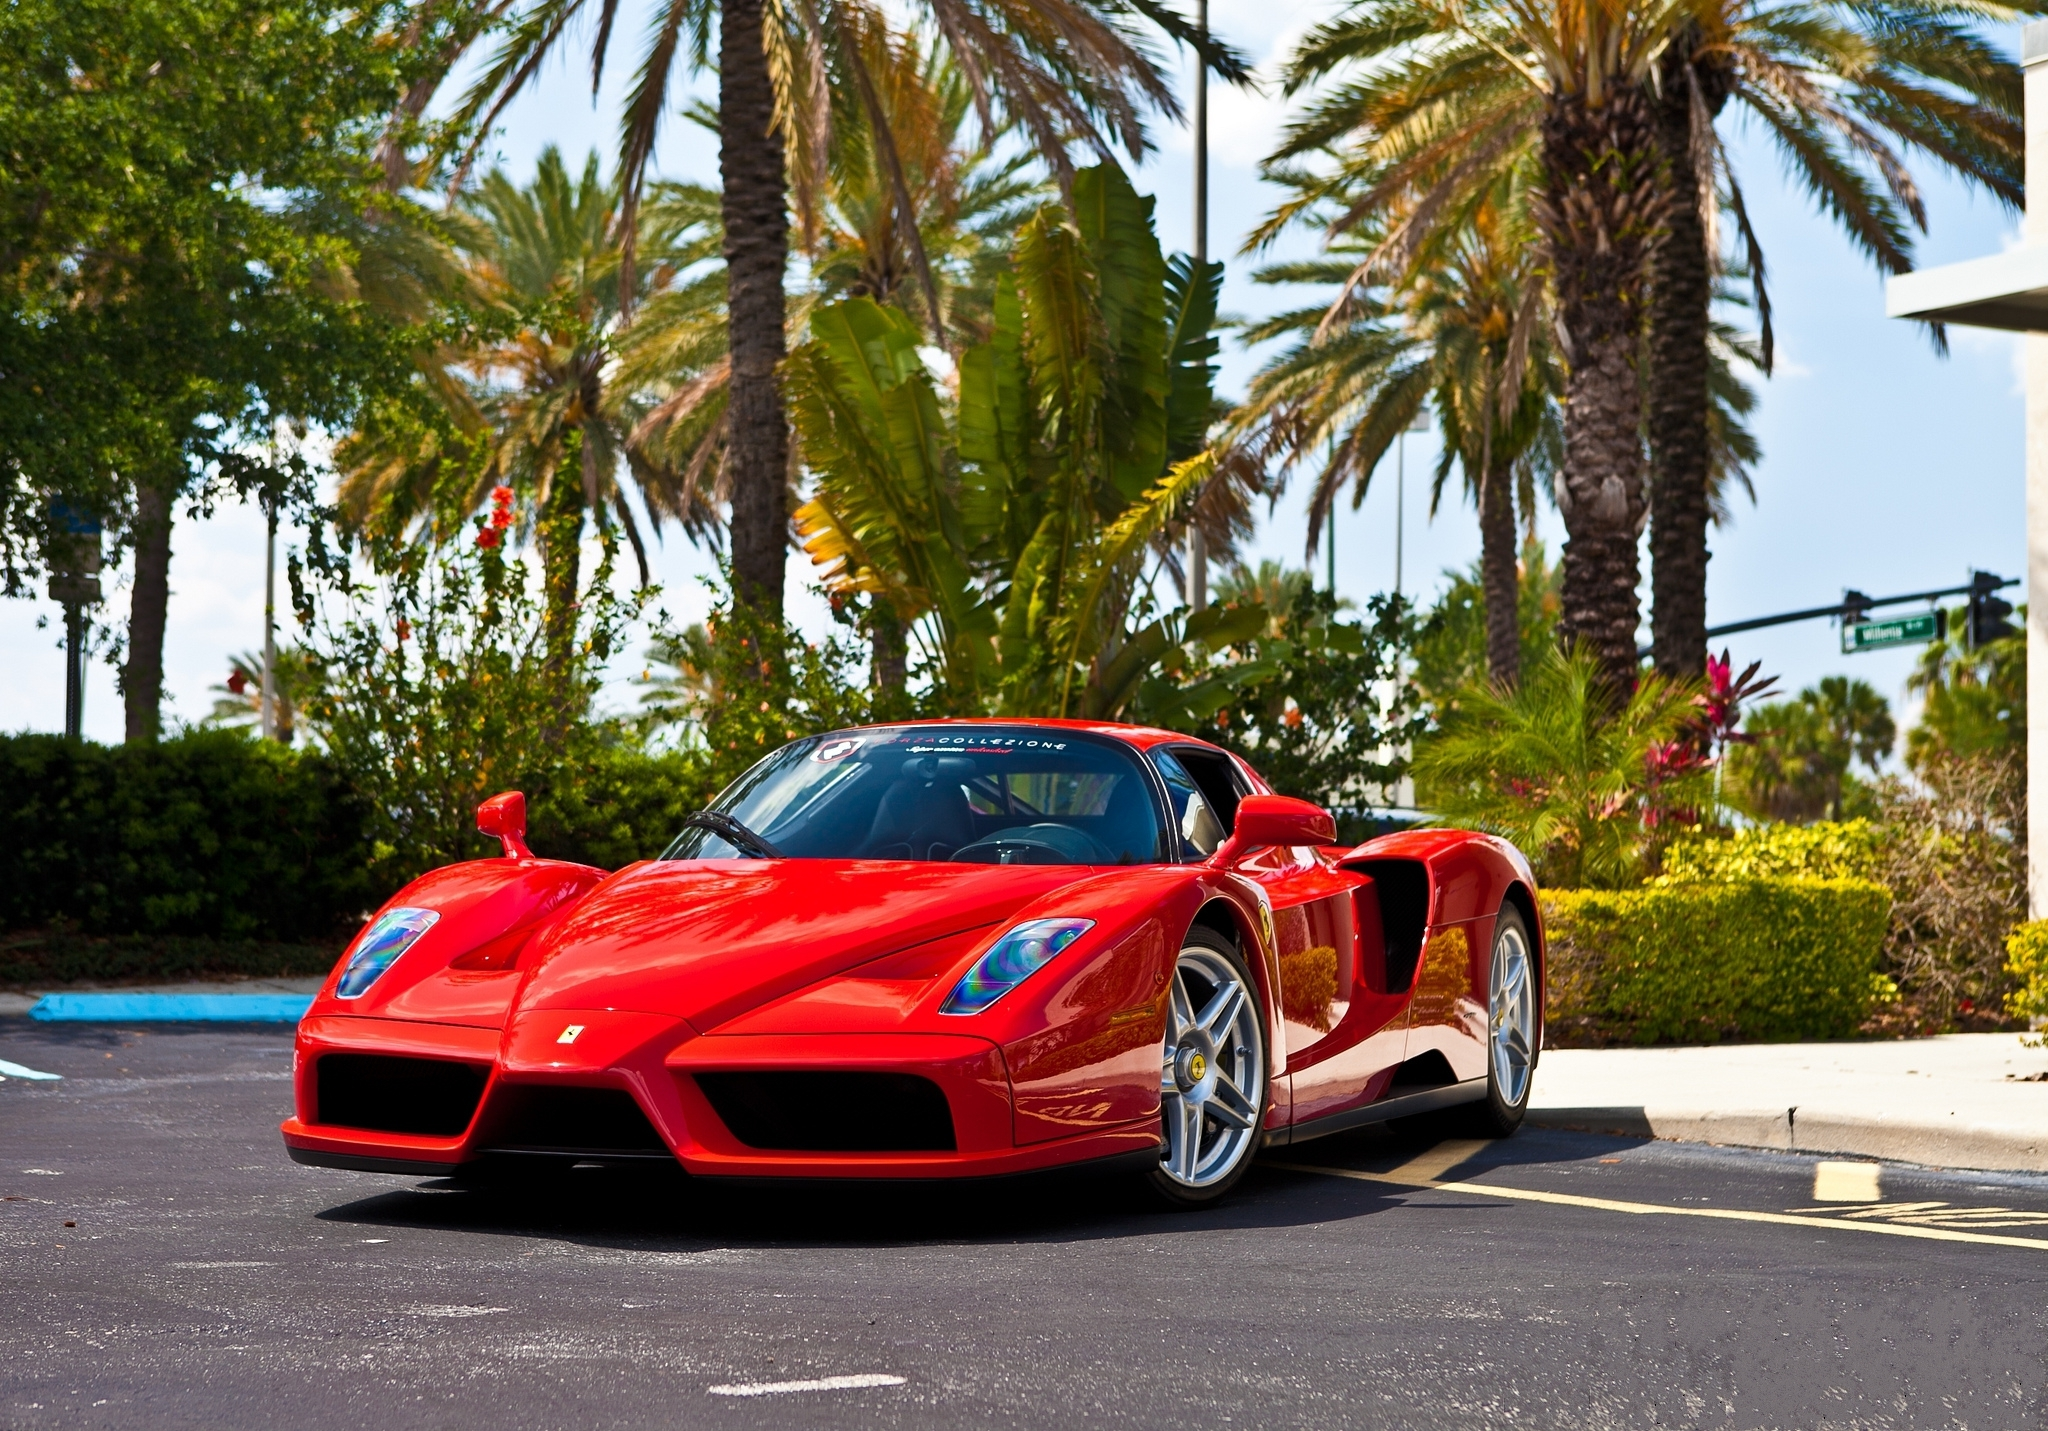 Vehicles cars ferrari enzo red exotic cars wallpaper - Luxury car hd wallpaper download ...